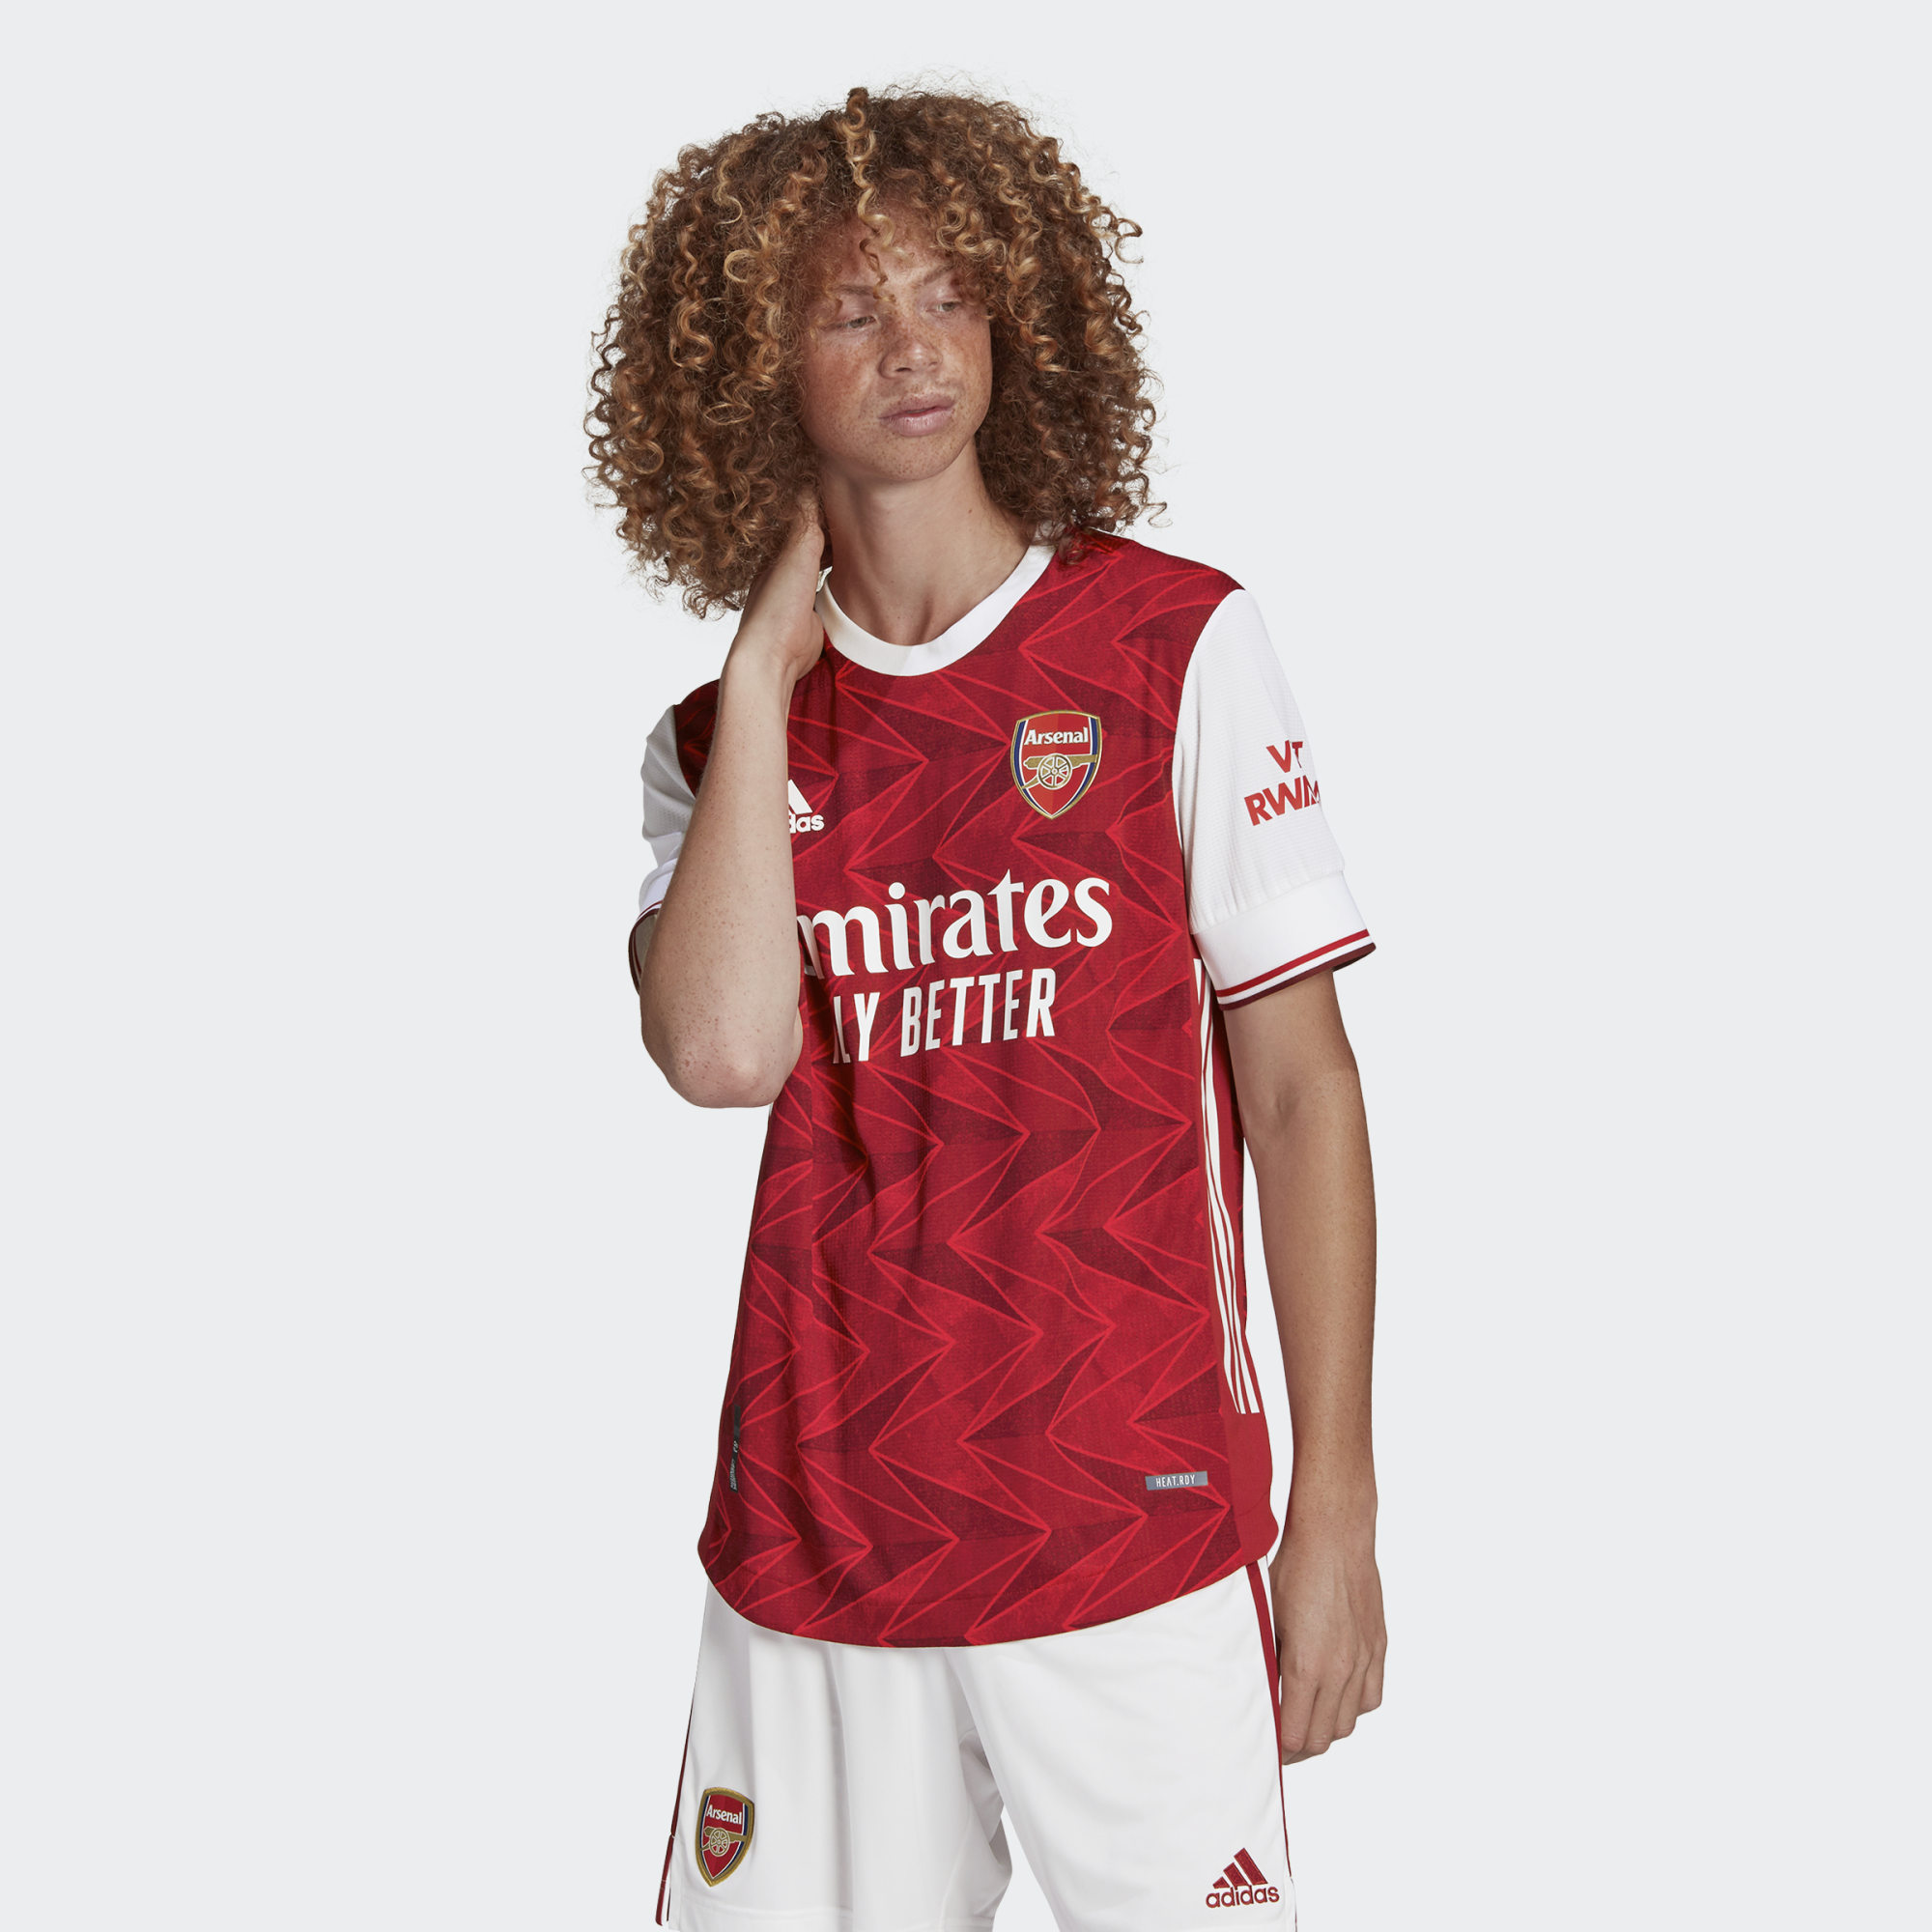 Arsenal 2020 21 Adidas Home Kit 20 21 Kits Football Shirt Blog